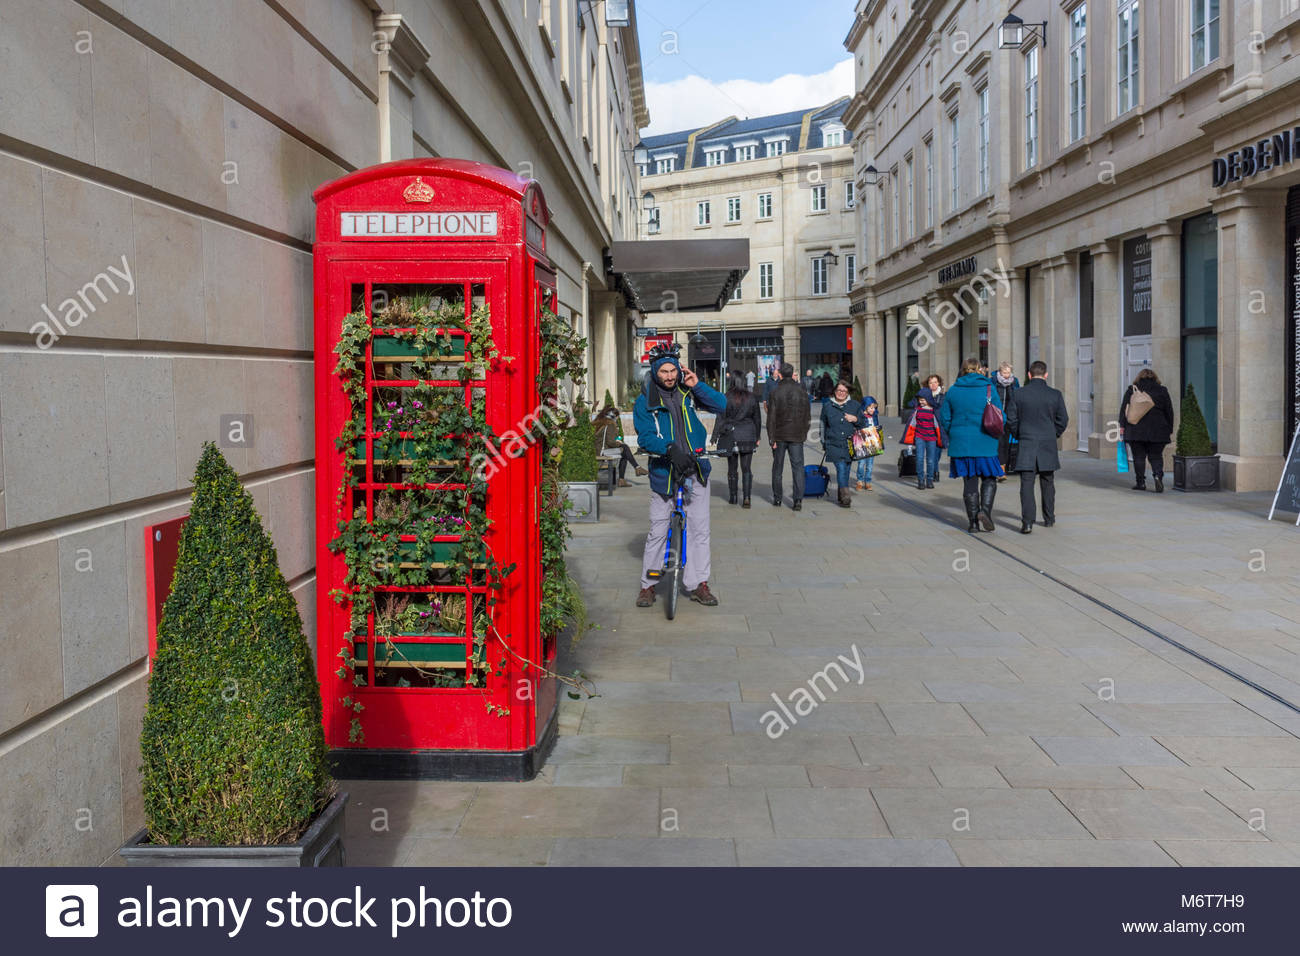 Traditional red telephone box decorated with plants in the SouthGate Shopping precinct - Stock Image